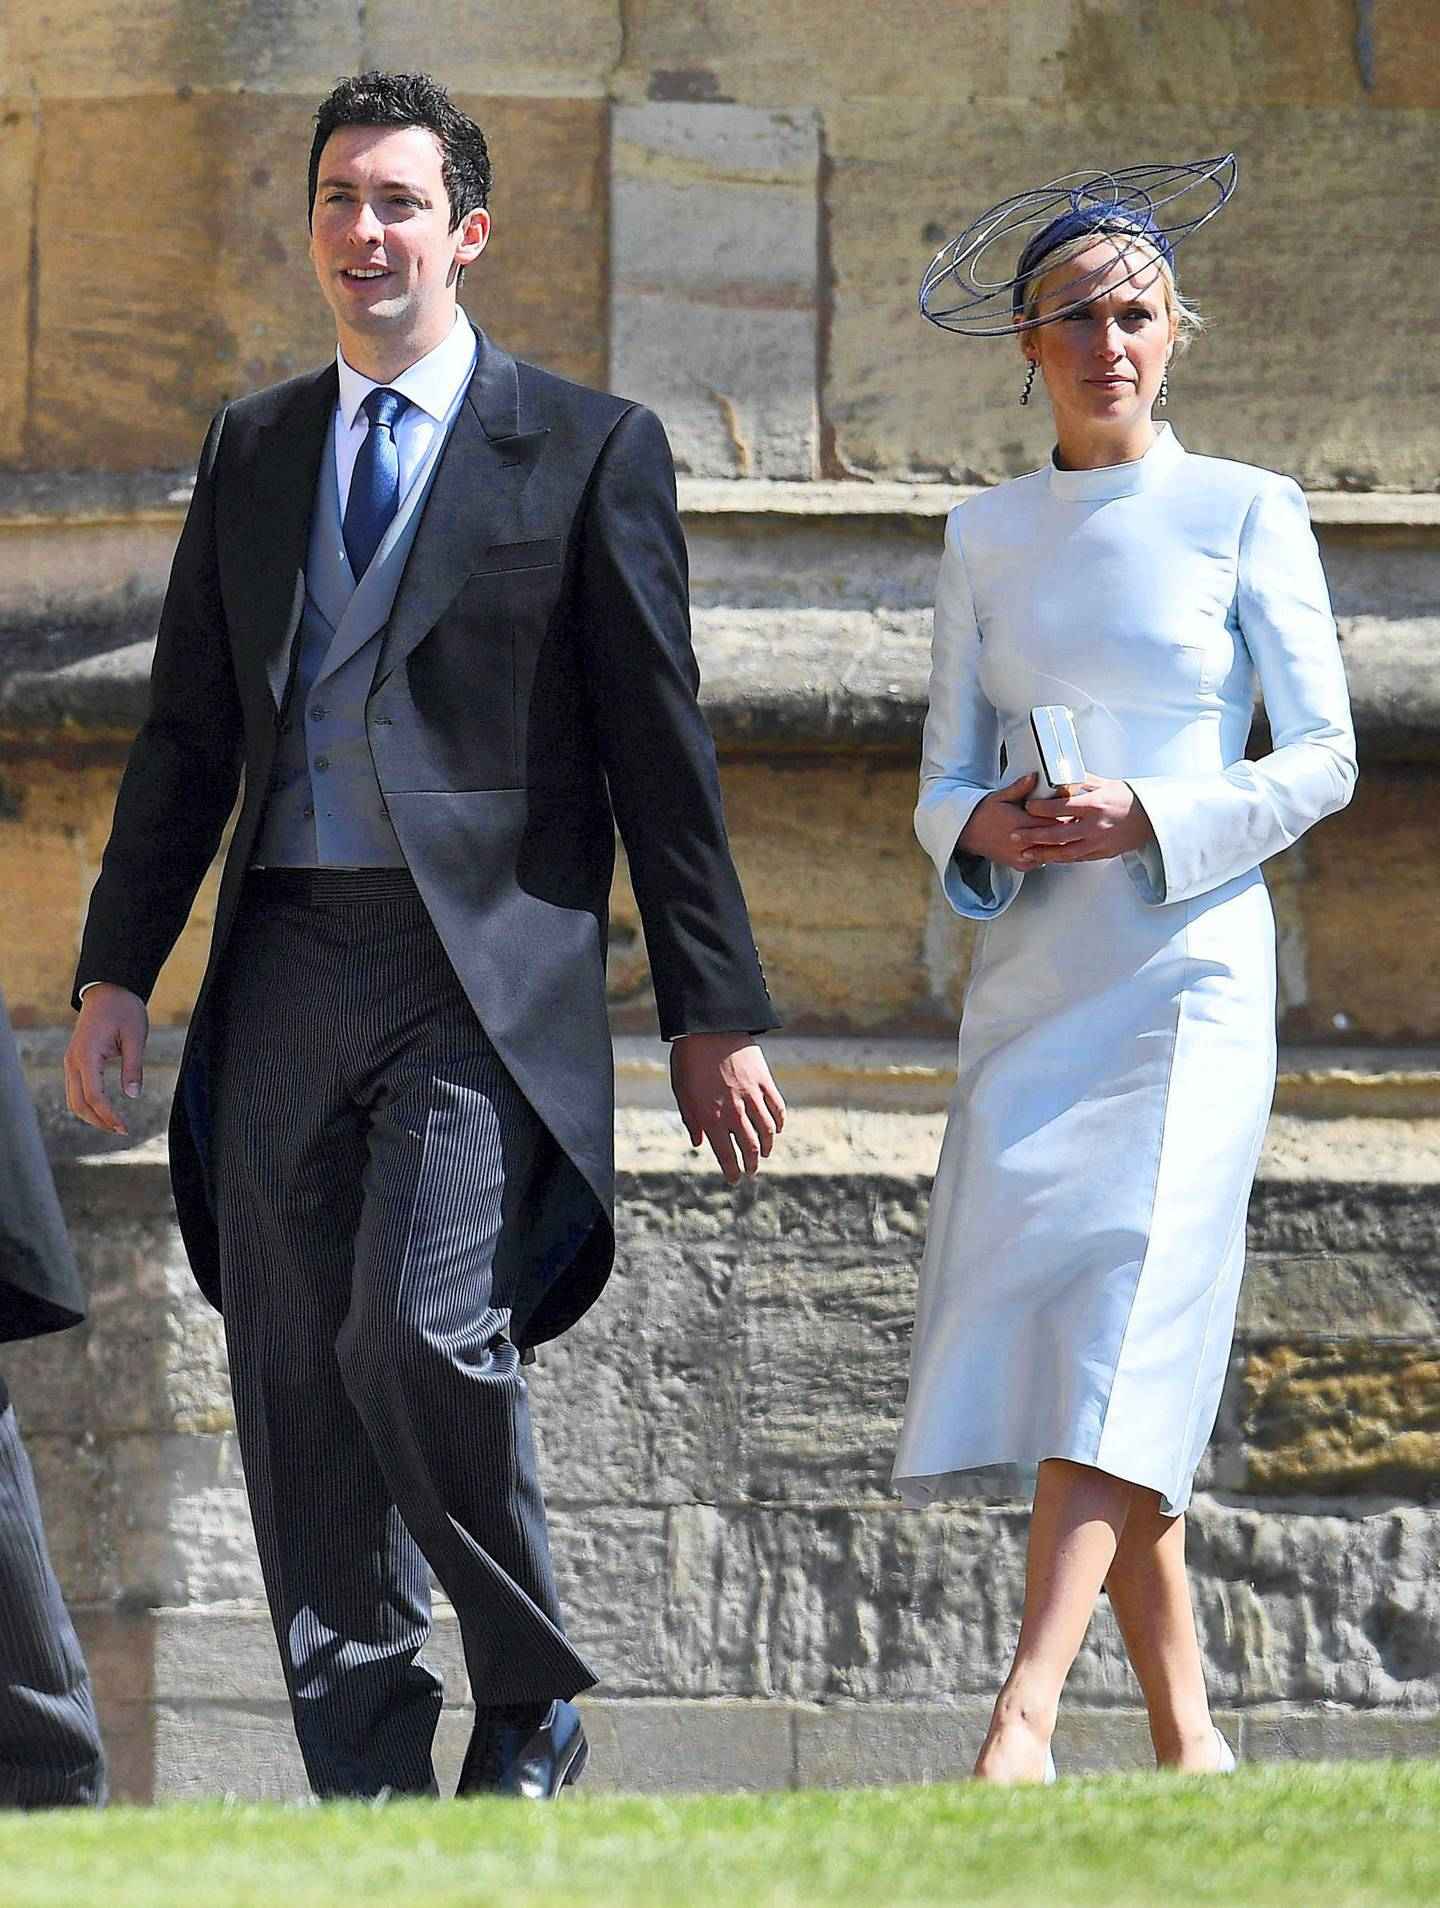 Mandatory Credit: Photo by James Gourley/Shutterstock (9685475fe) Michael Hess and Misha Nonoo The wedding of Prince Harry and Meghan Markle, Pre-Ceremony, Windsor, Berkshire, UK - 19 May 2018